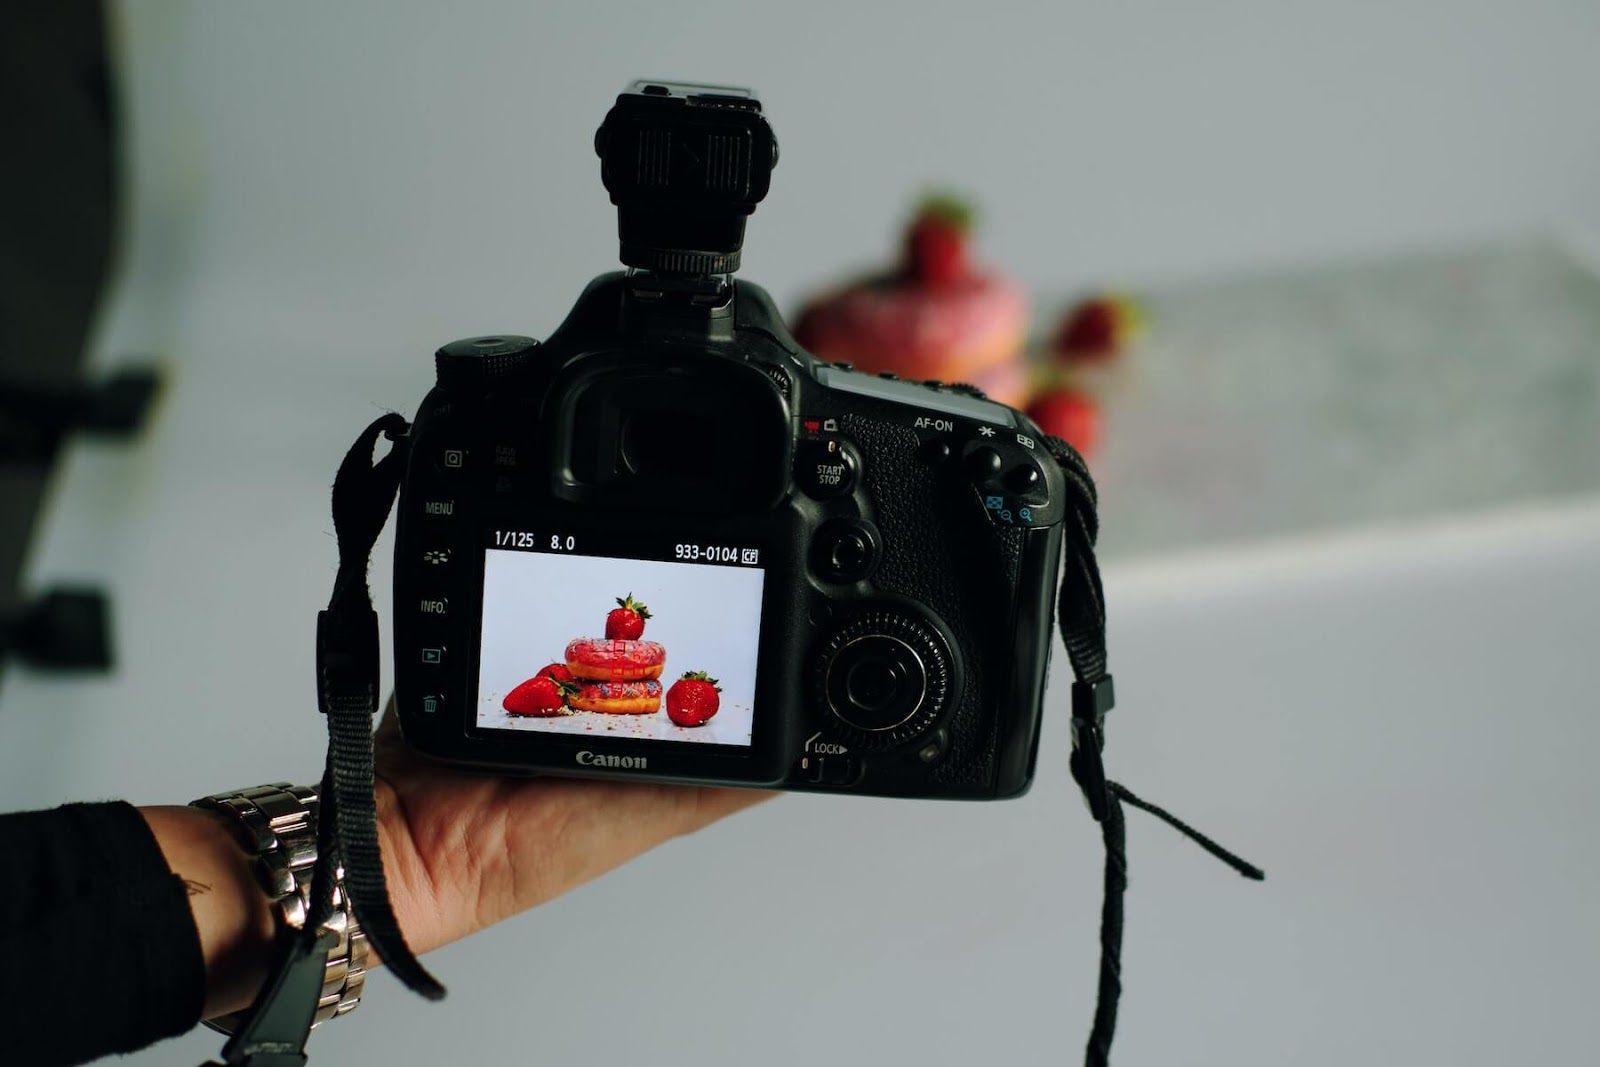 a hand holding a digital camera showing the photo it just took of strawberries and other food.